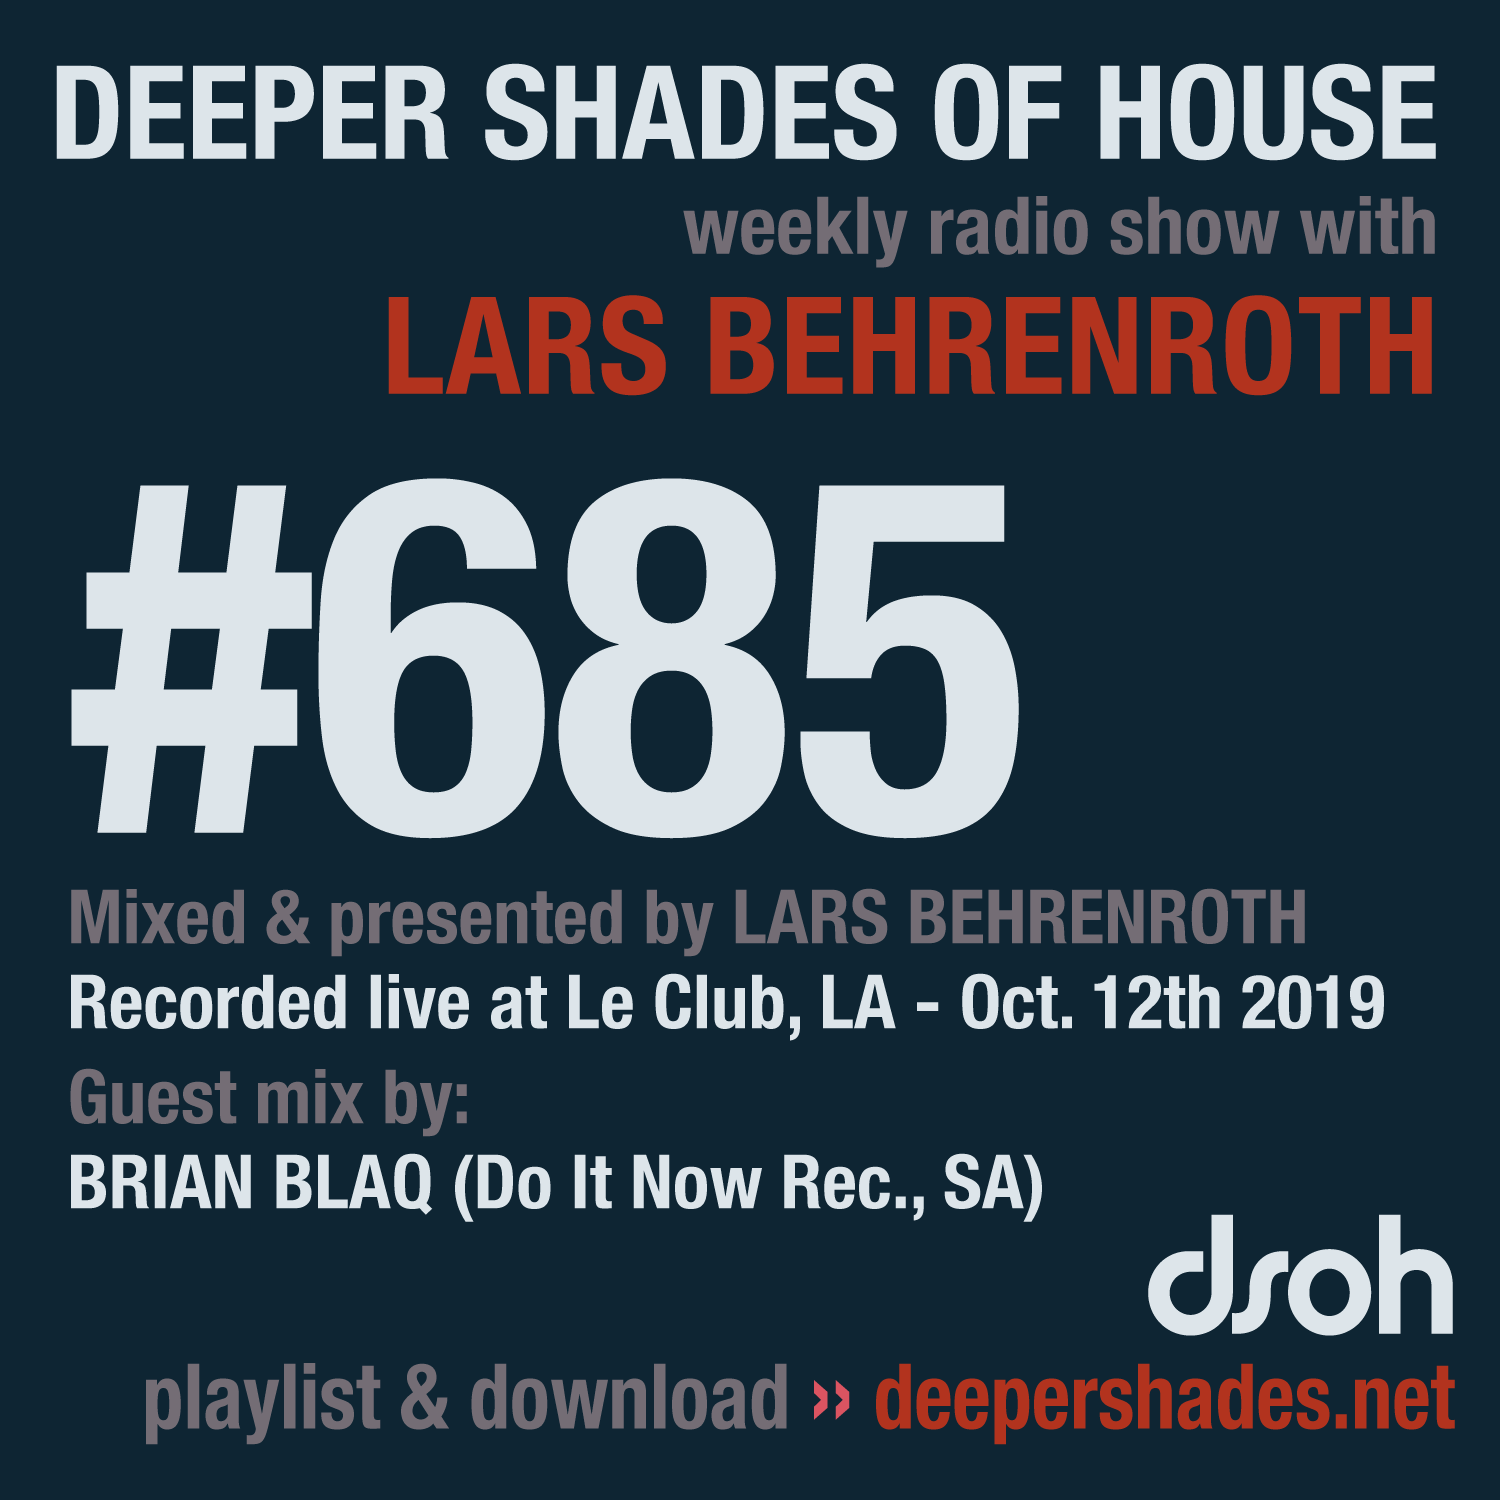 Deeper Shades Of House #685 - guest mix by BRIAN BLAQ